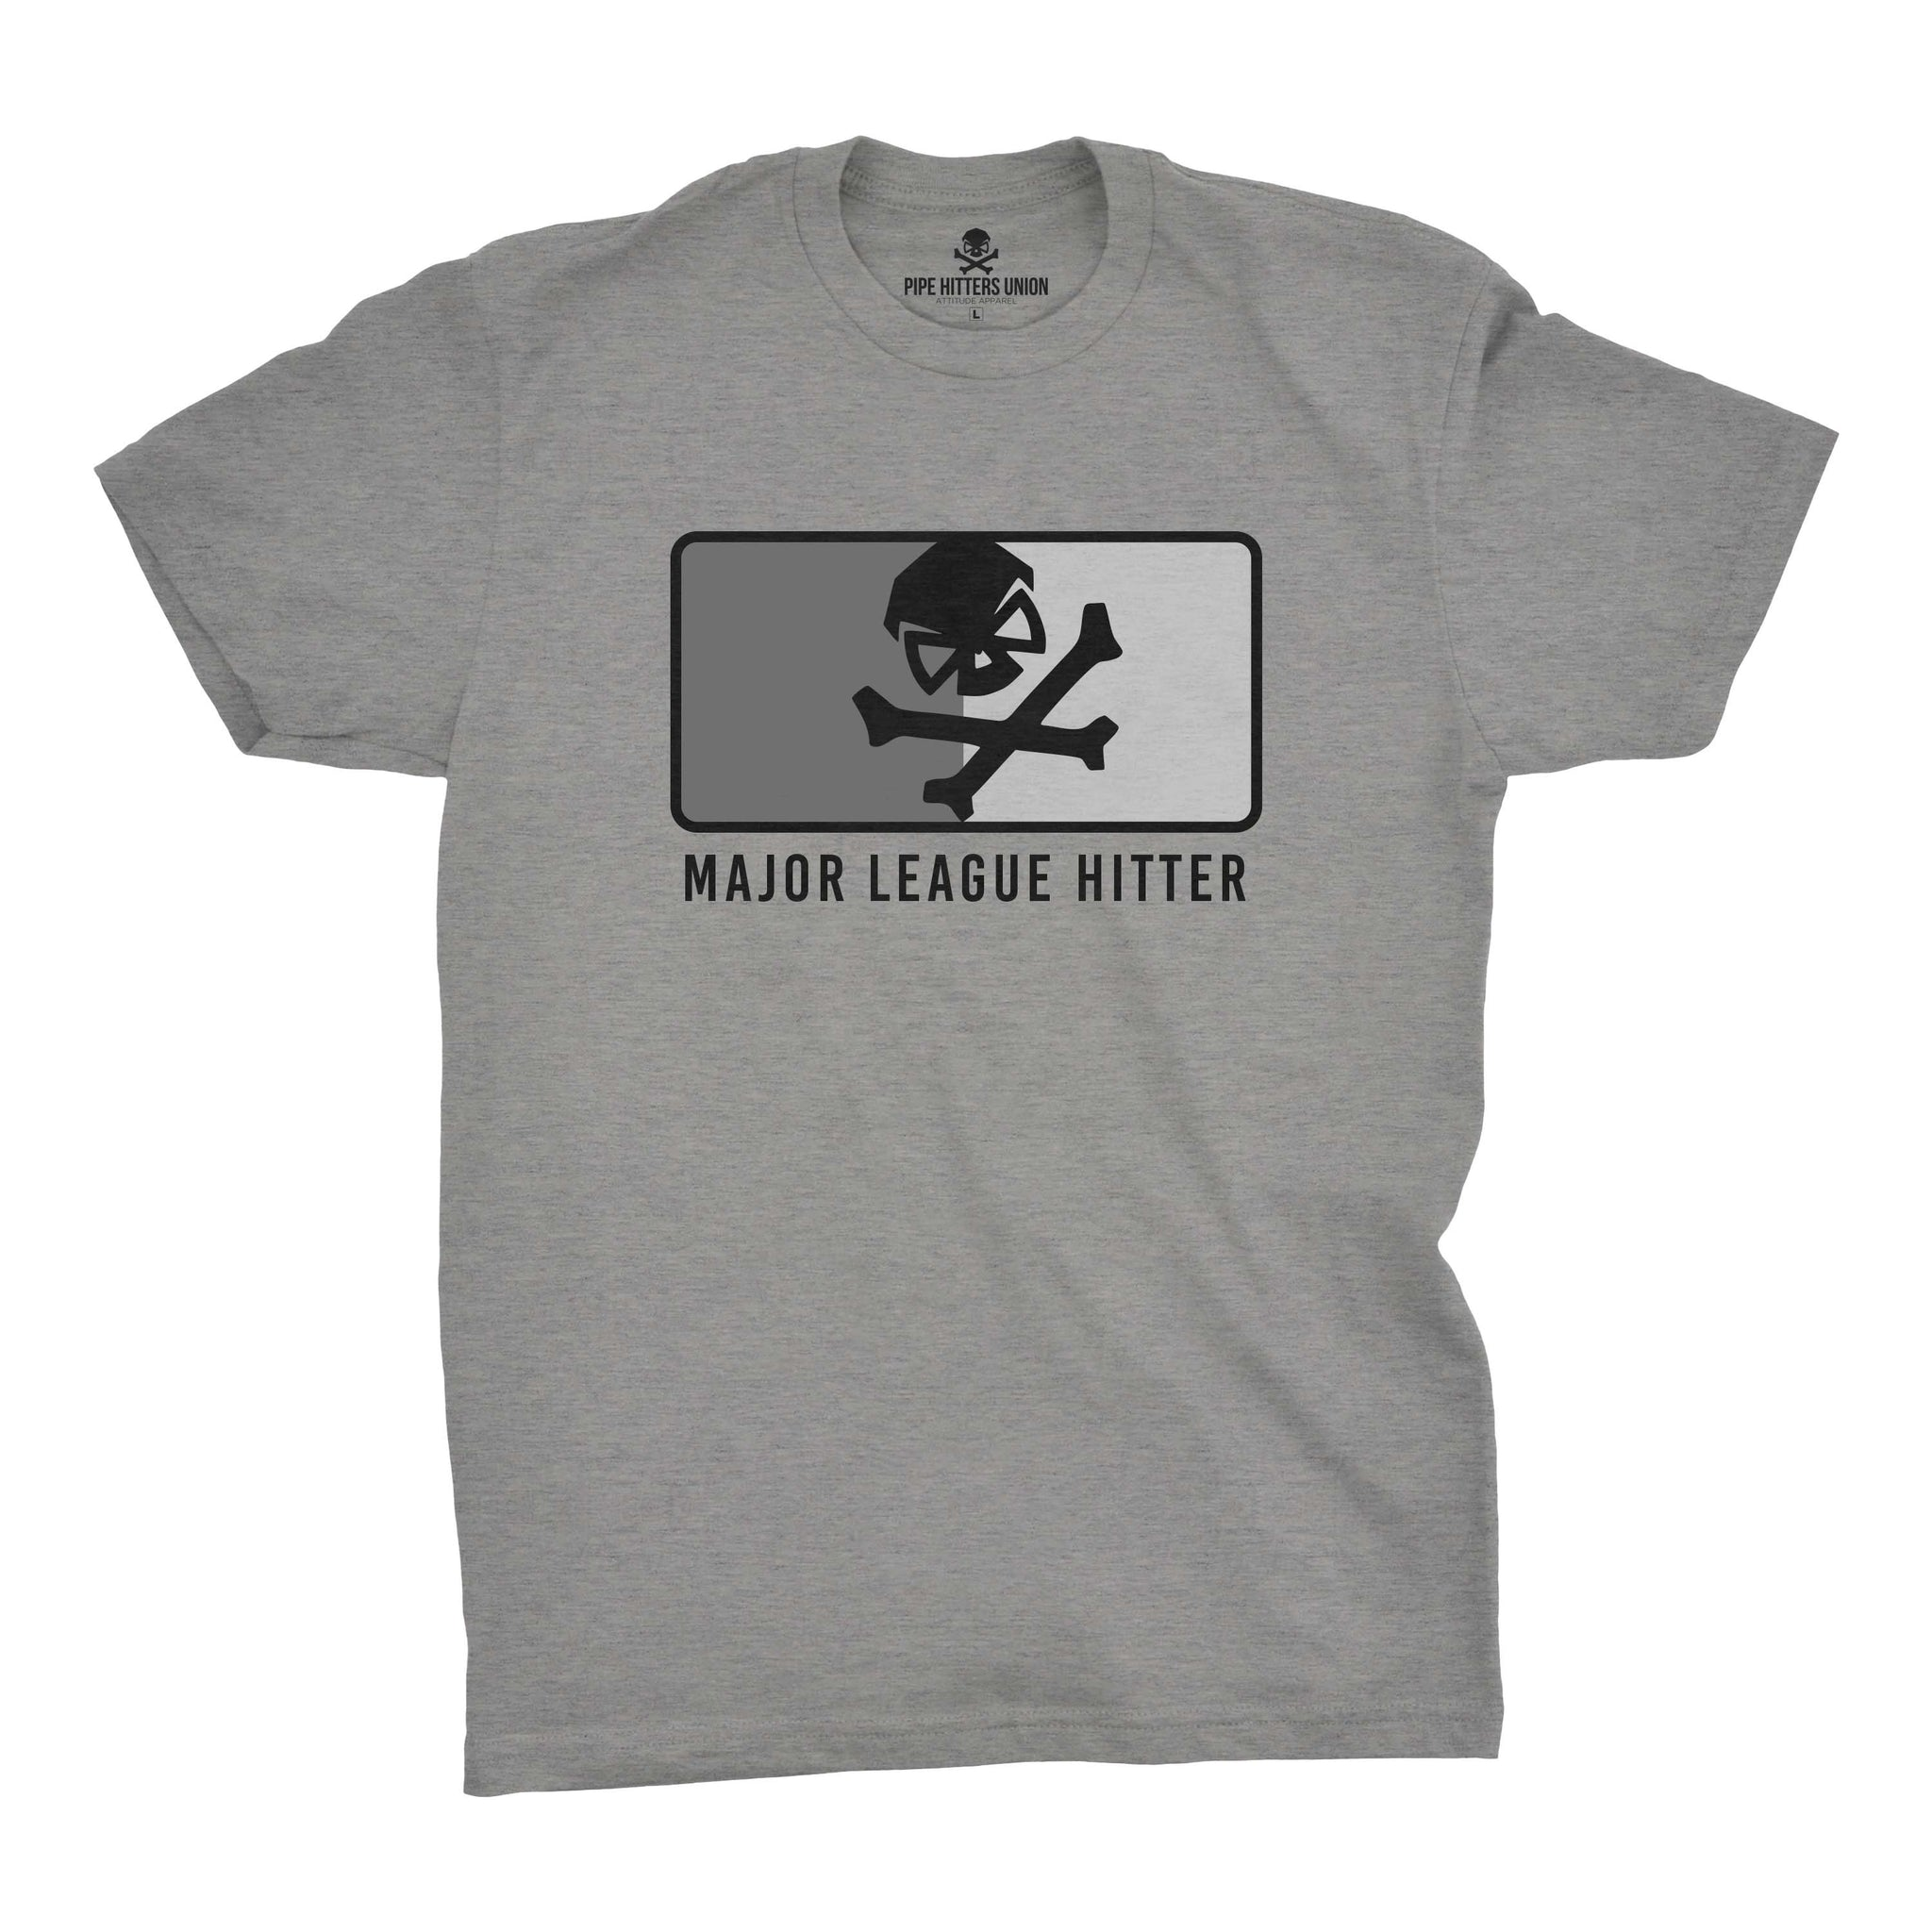 Major League Hitter - Grey/Subdued - T-Shirts - Pipe Hitters Union